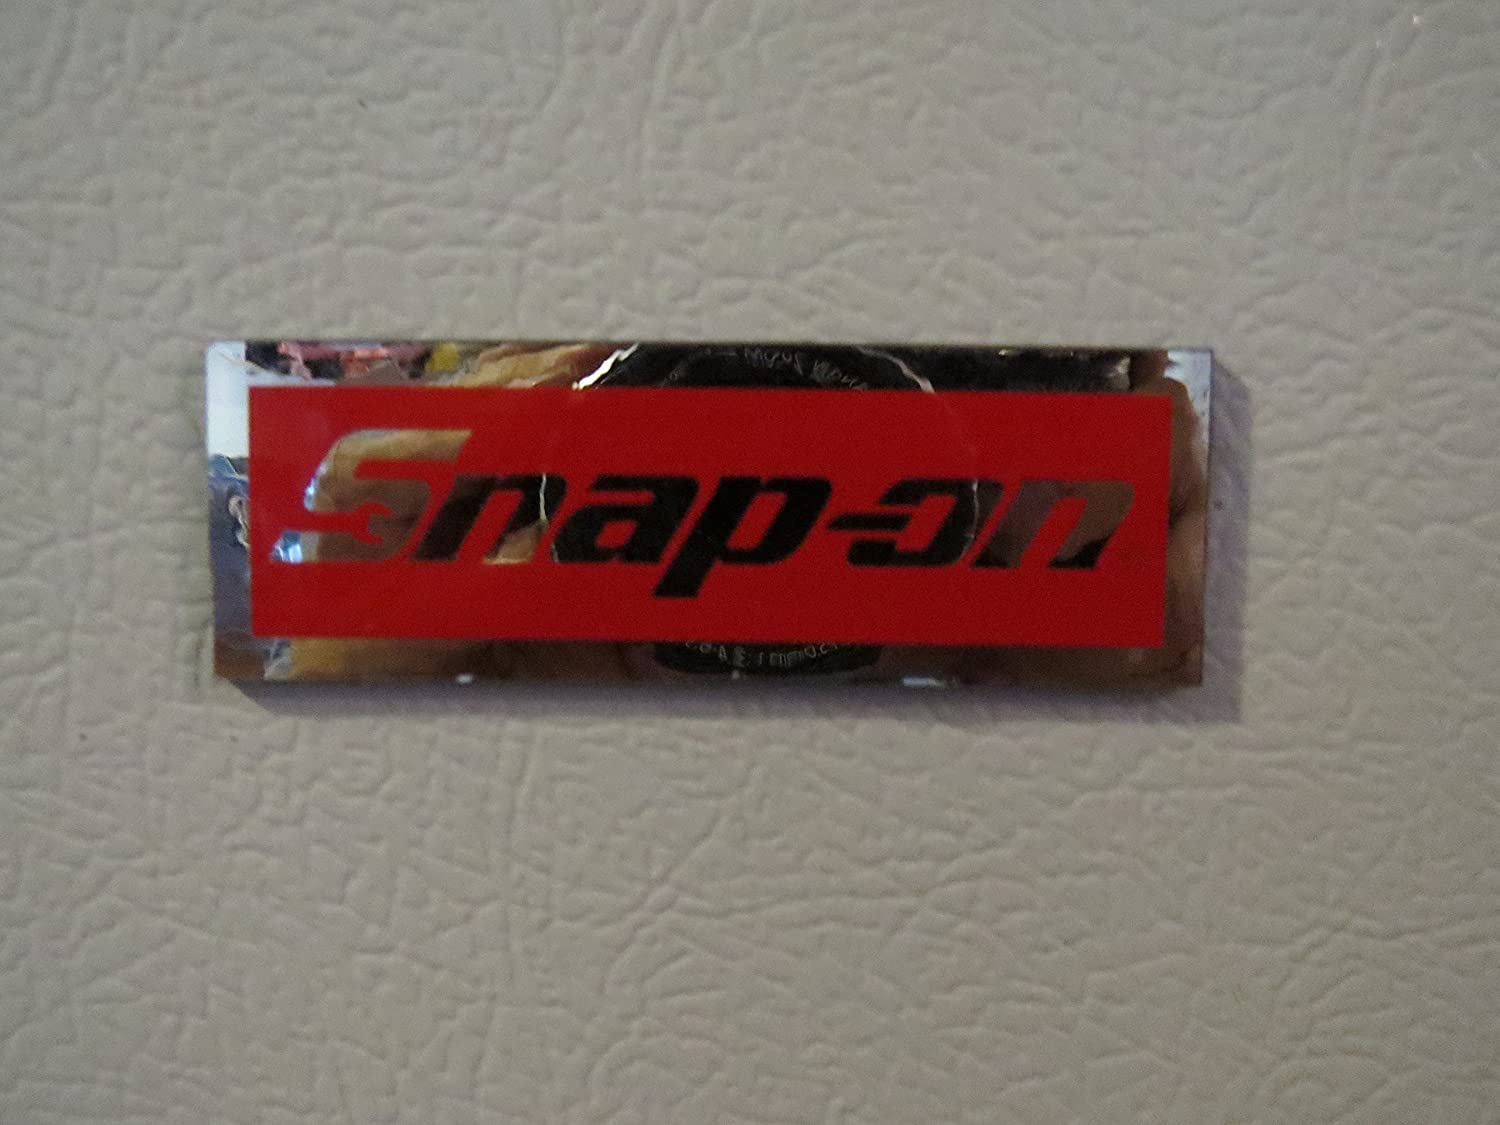 Awesome Snap On Tools 3 X 1 Logo Decal Magnet Fridge Toolbox Work Bench Red Chrome Garage Uwap Interior Chair Design Uwaporg